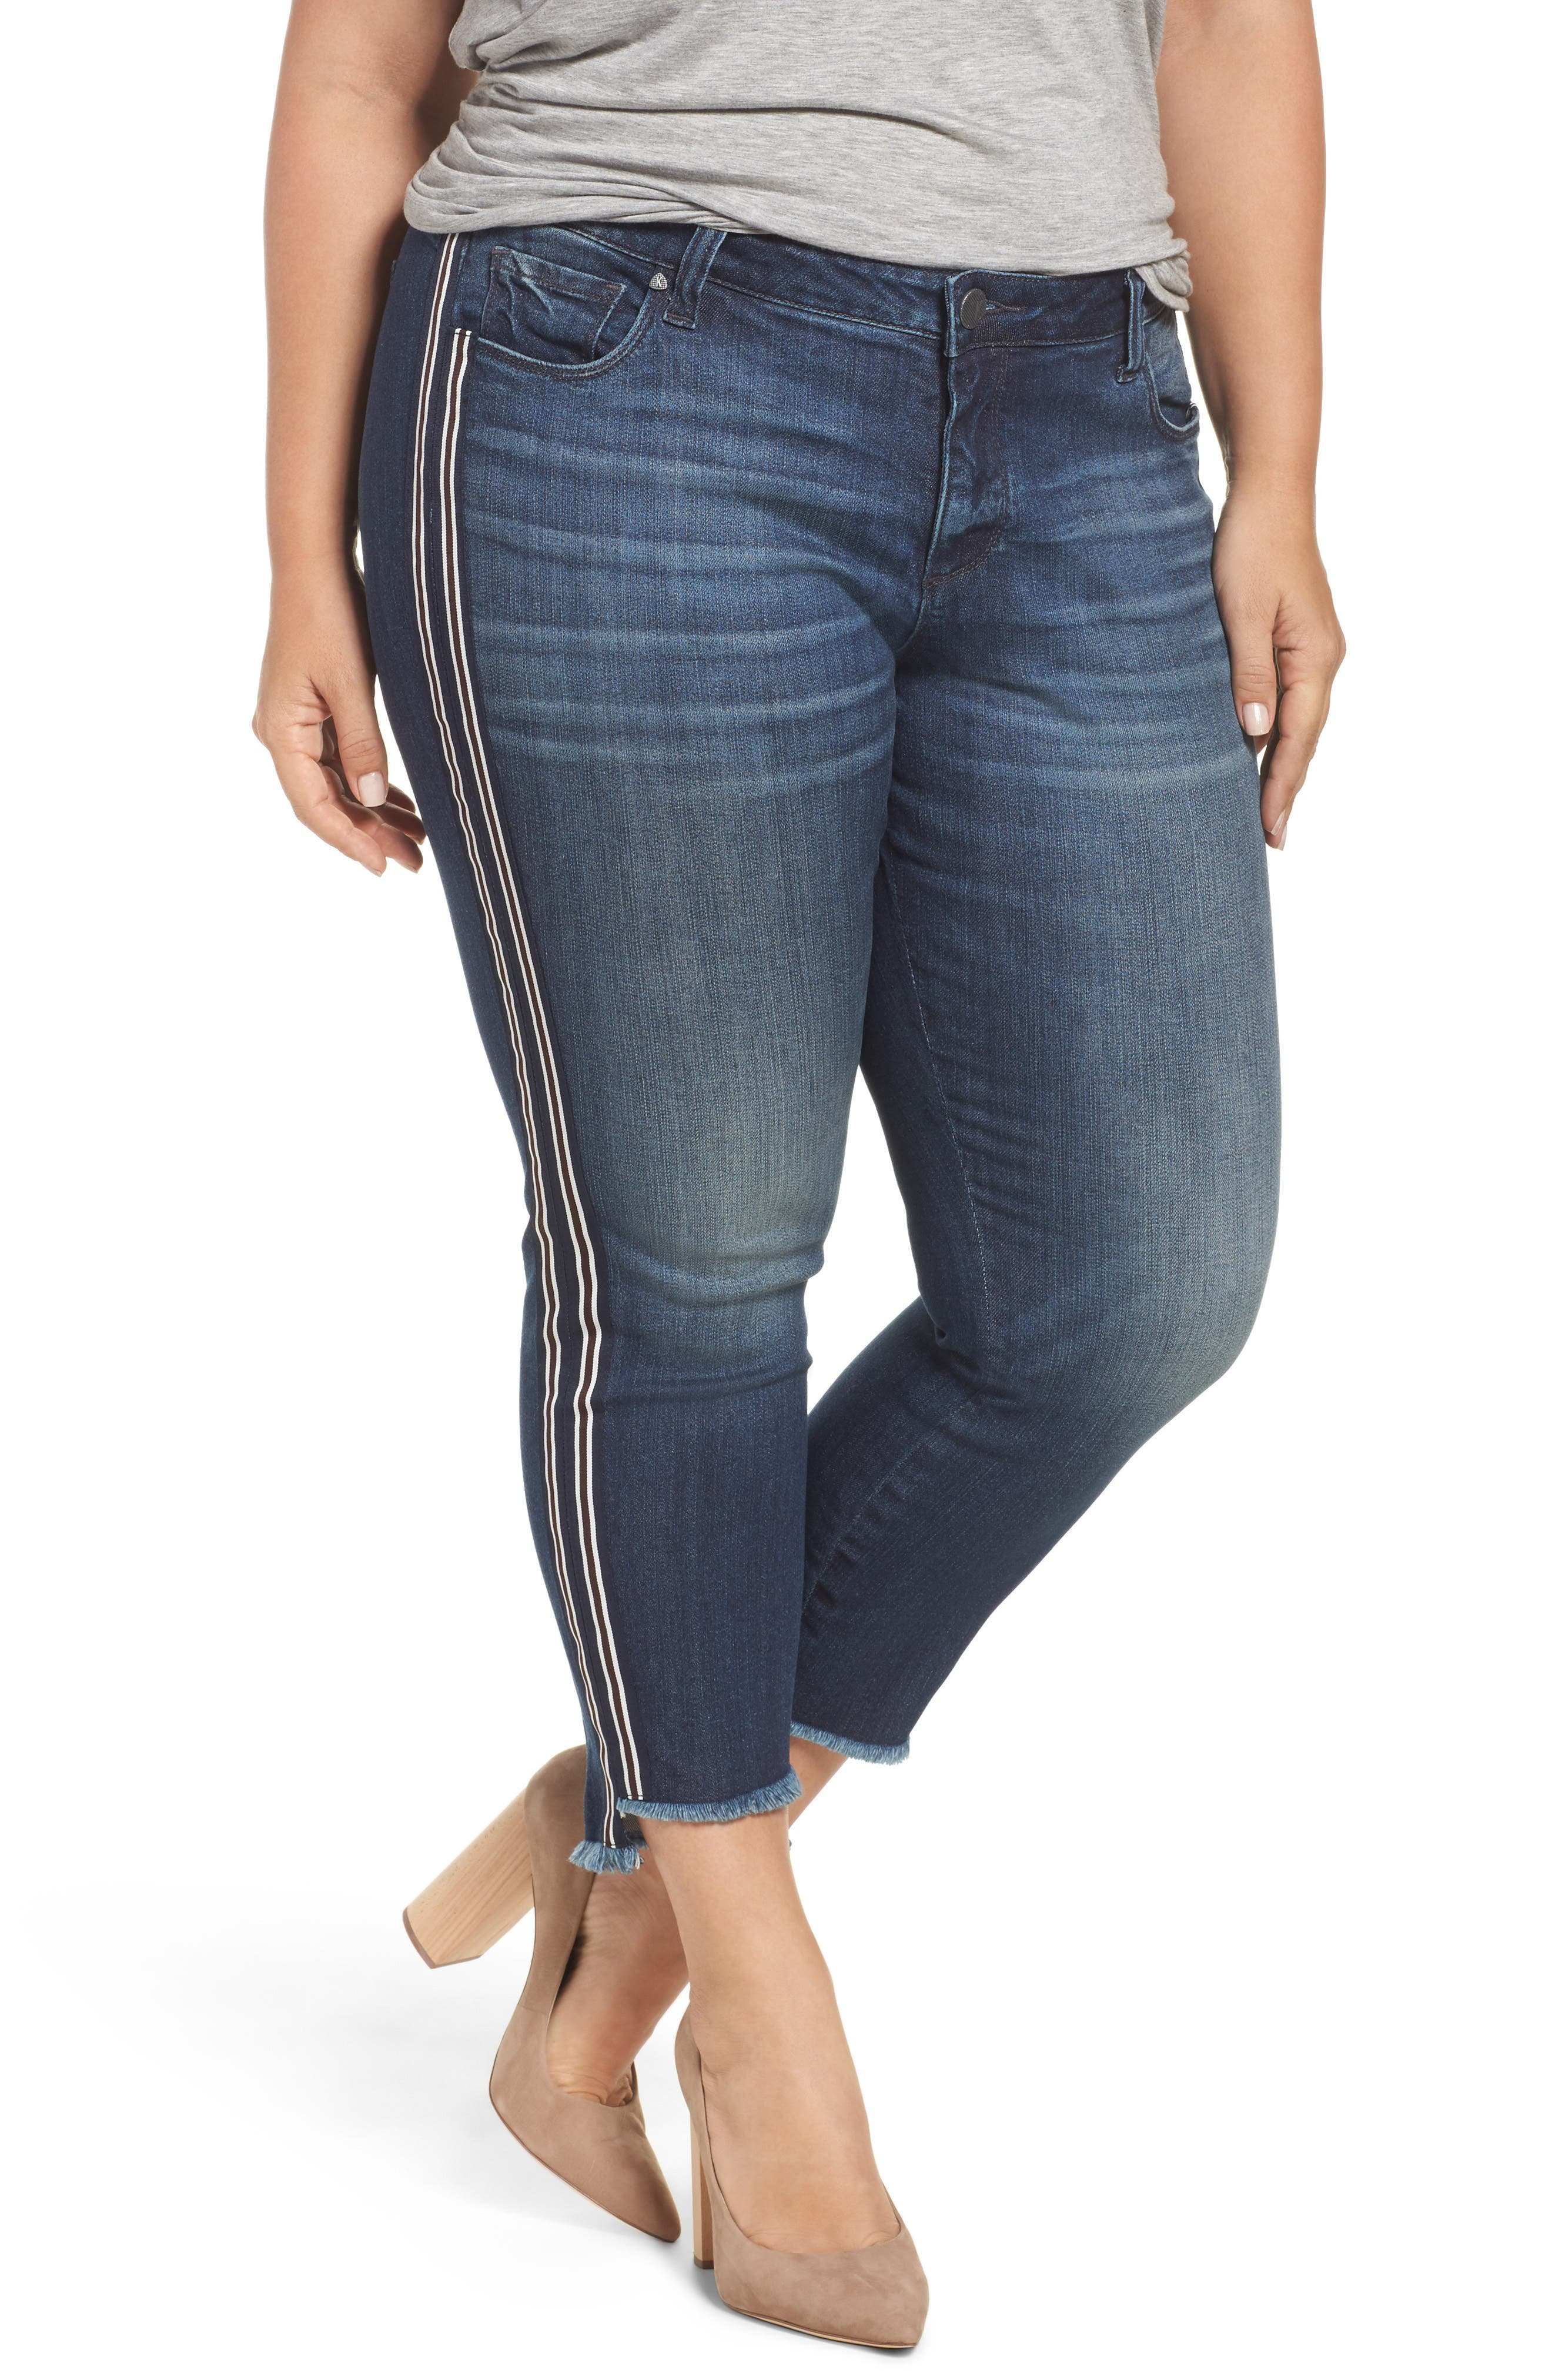 Reese Side Stripe Uneven Ankle Jeans,                             Main thumbnail 1, color,                             ANALYZED